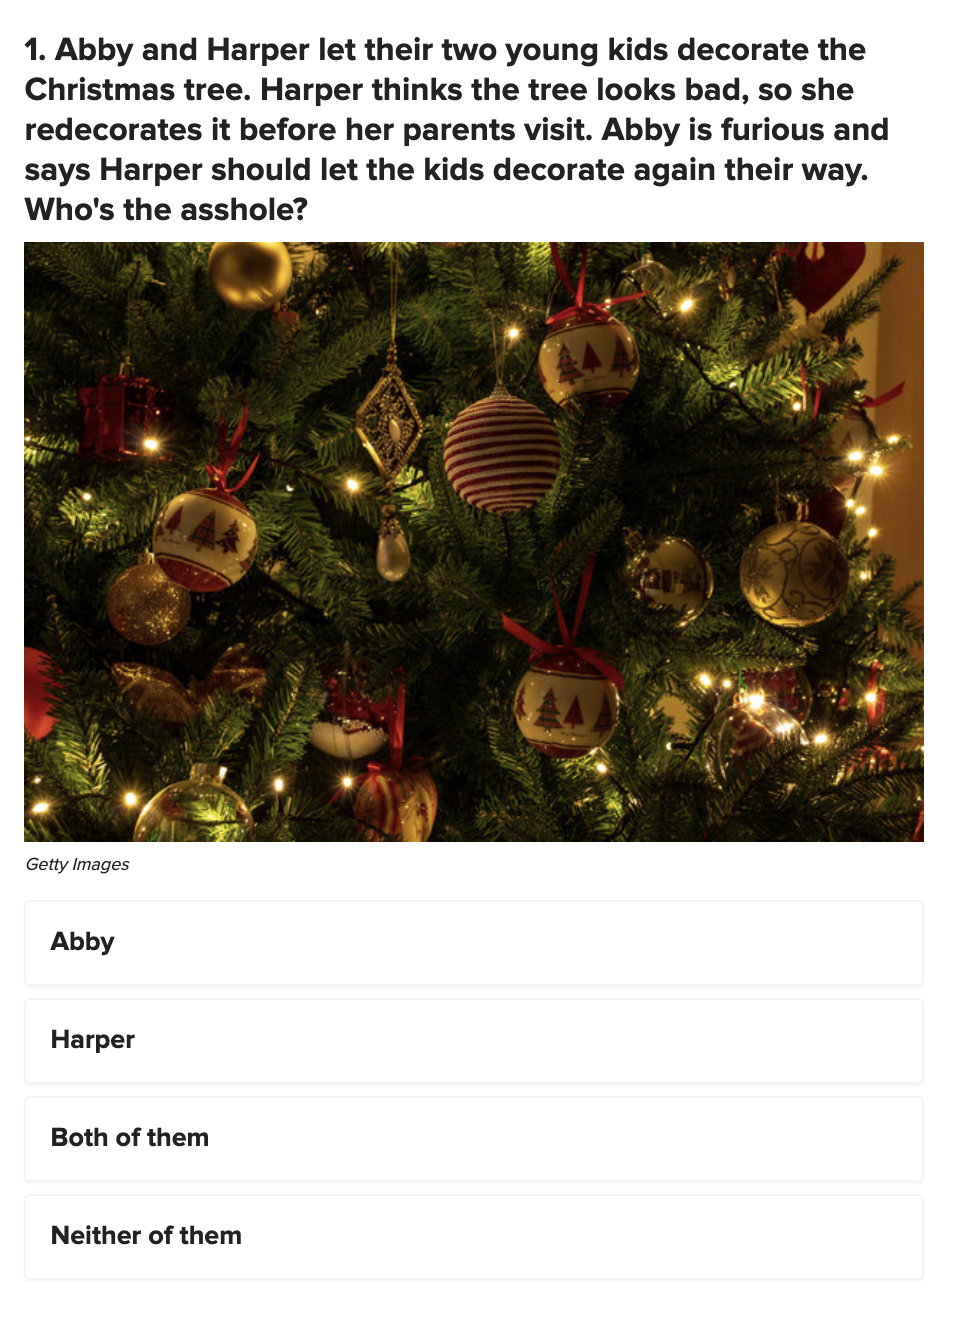 Abby and Harper let their two young kids decorate the Christmas tree. Harper thinks the tree looks bad, so she redecorates it before her parents visit. Abby is furious and says Harper should let the kids decorate again their way.